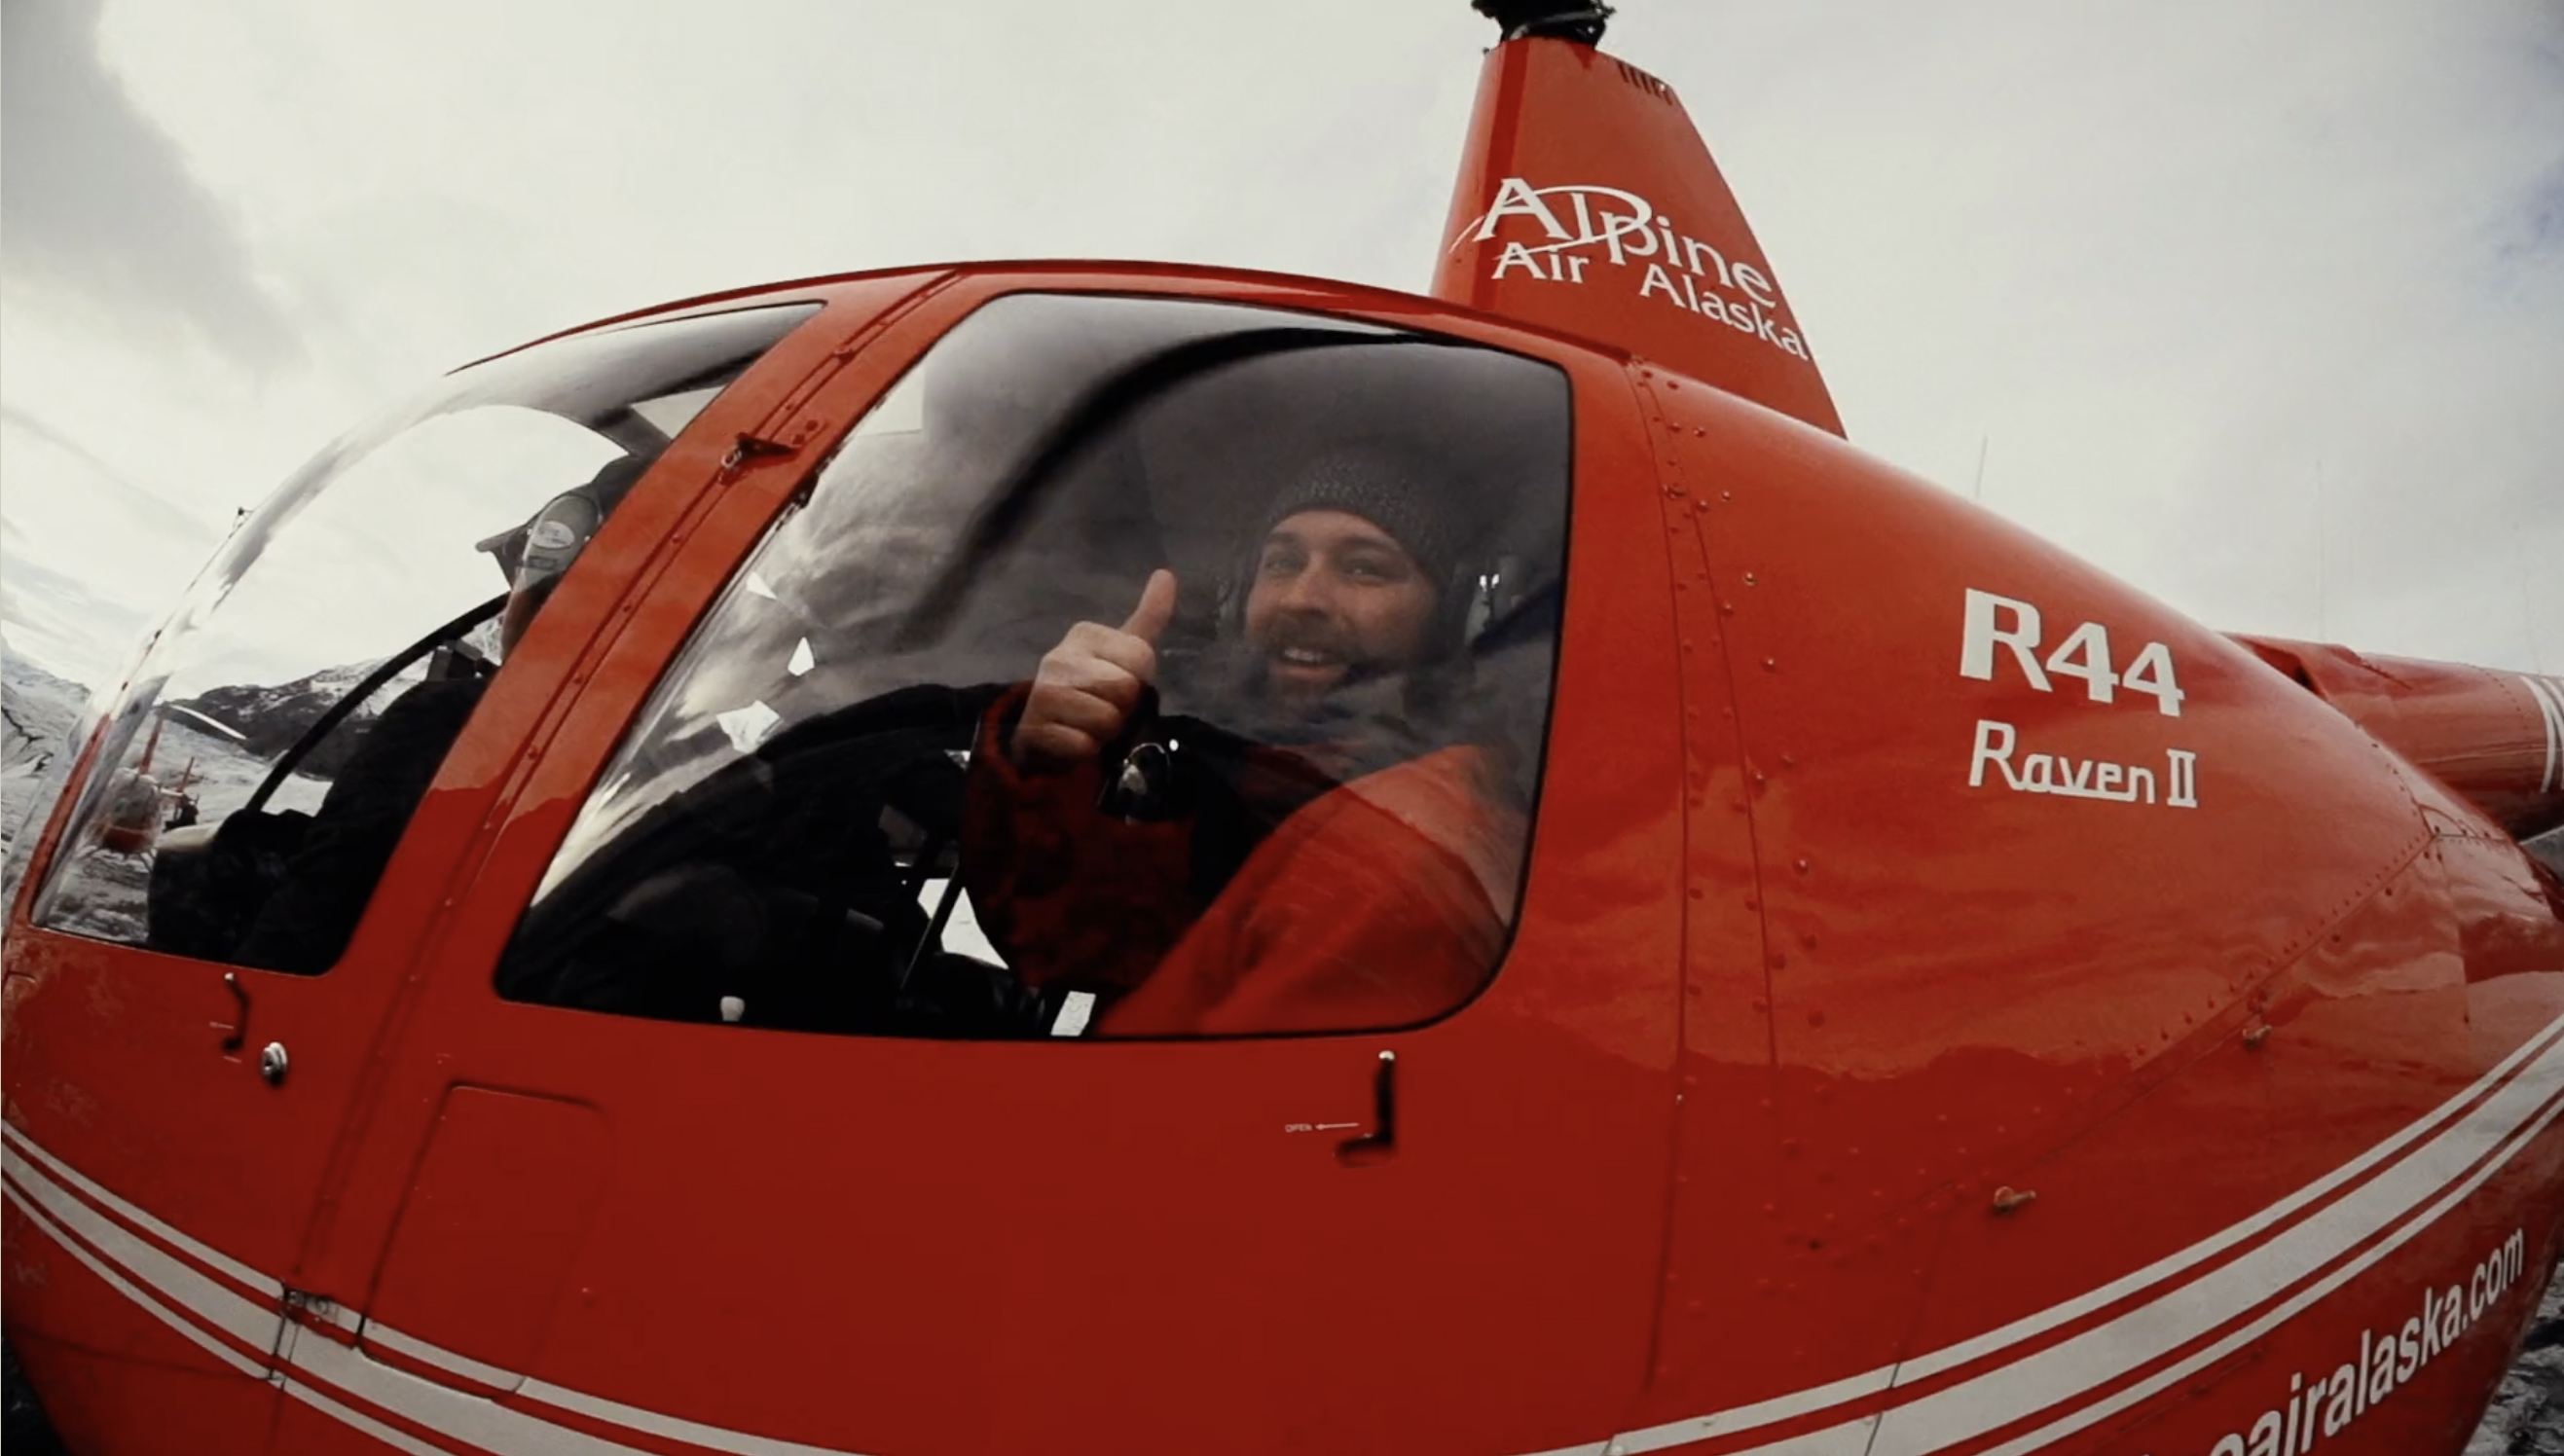 Alaska Experience Video by EVO FILMS Wins 2016 Vega Digital Awards